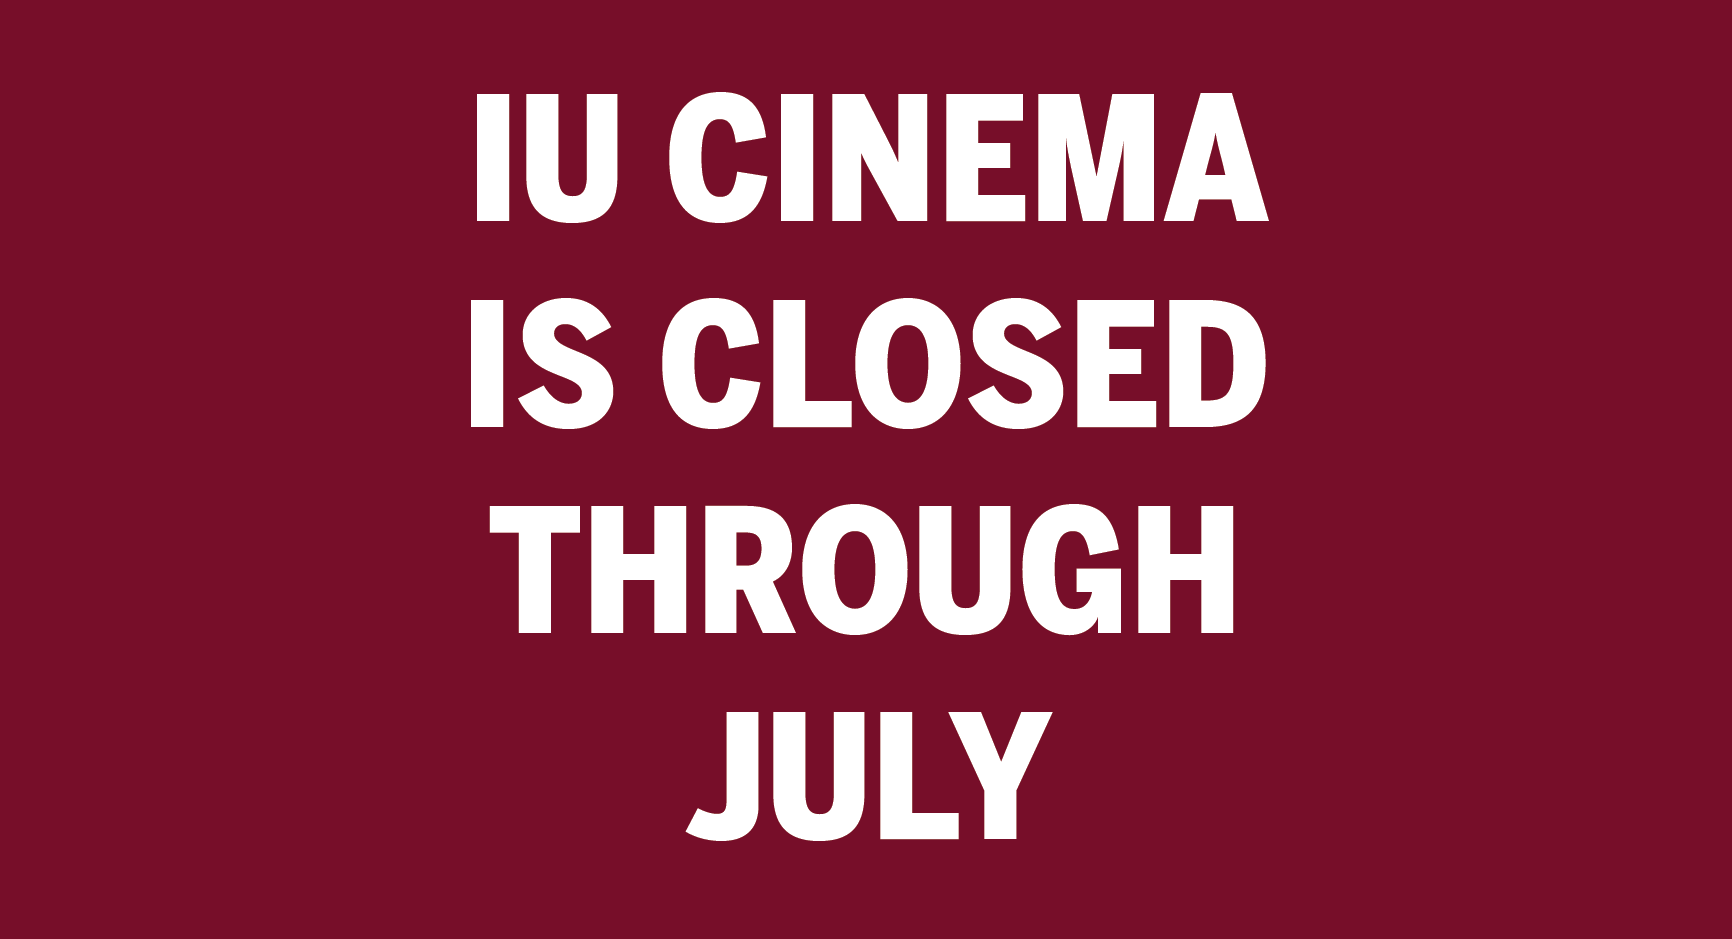 Still image from IU Cinema is closed through July.